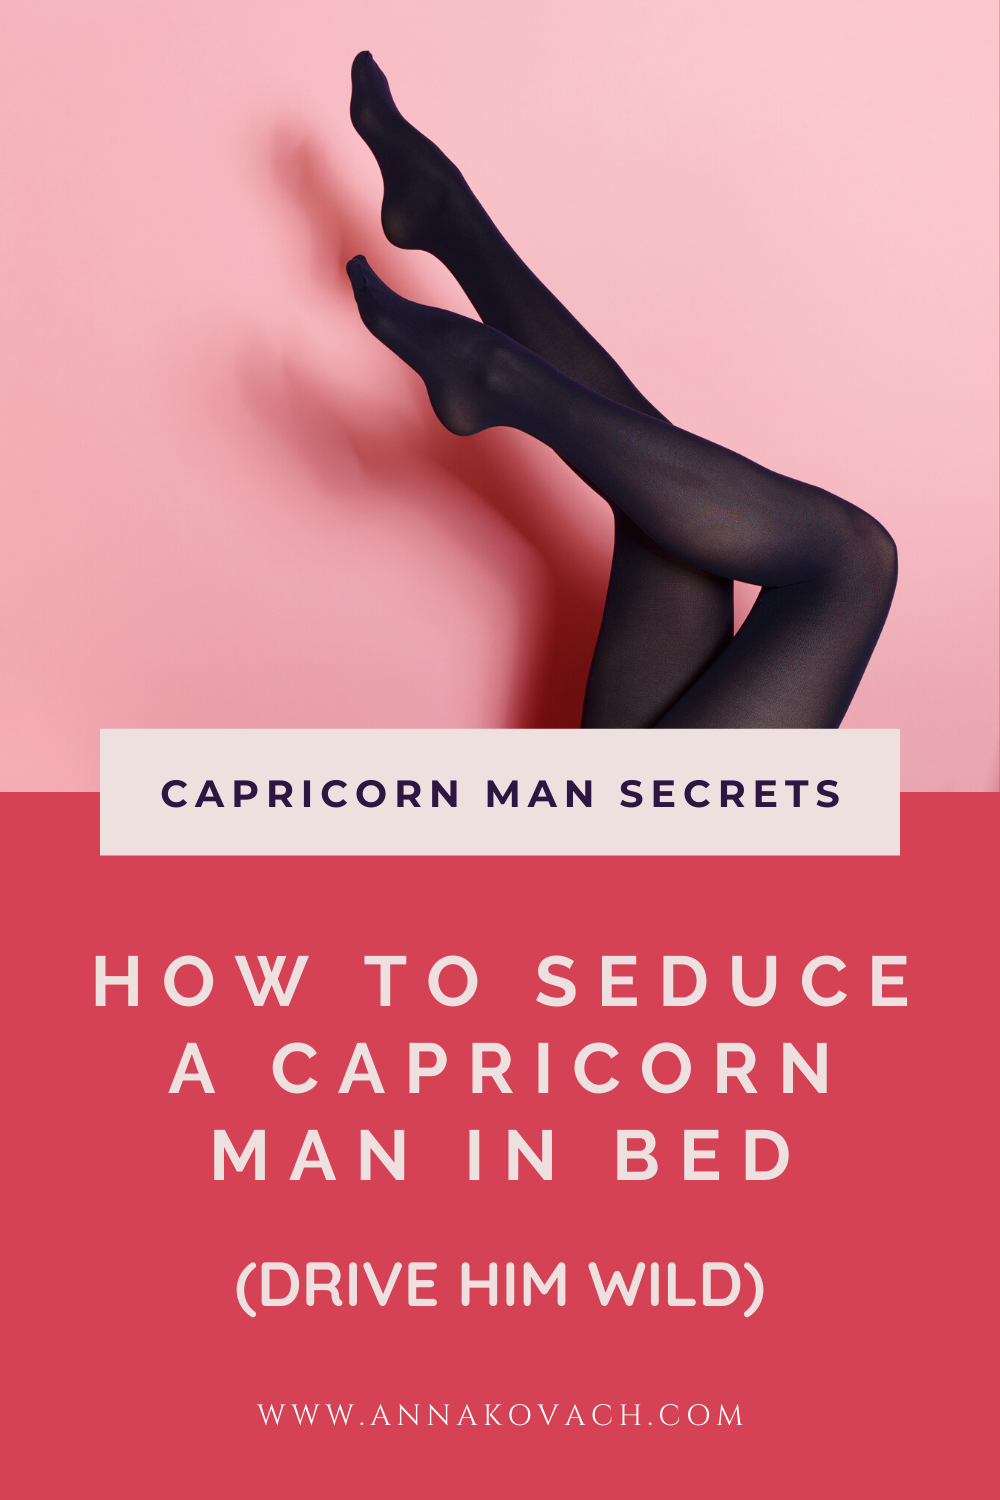 4af9d55596ba6eac9c1b1f52c5d5db73 - How To Get A Capricorn Man To Ask You Out